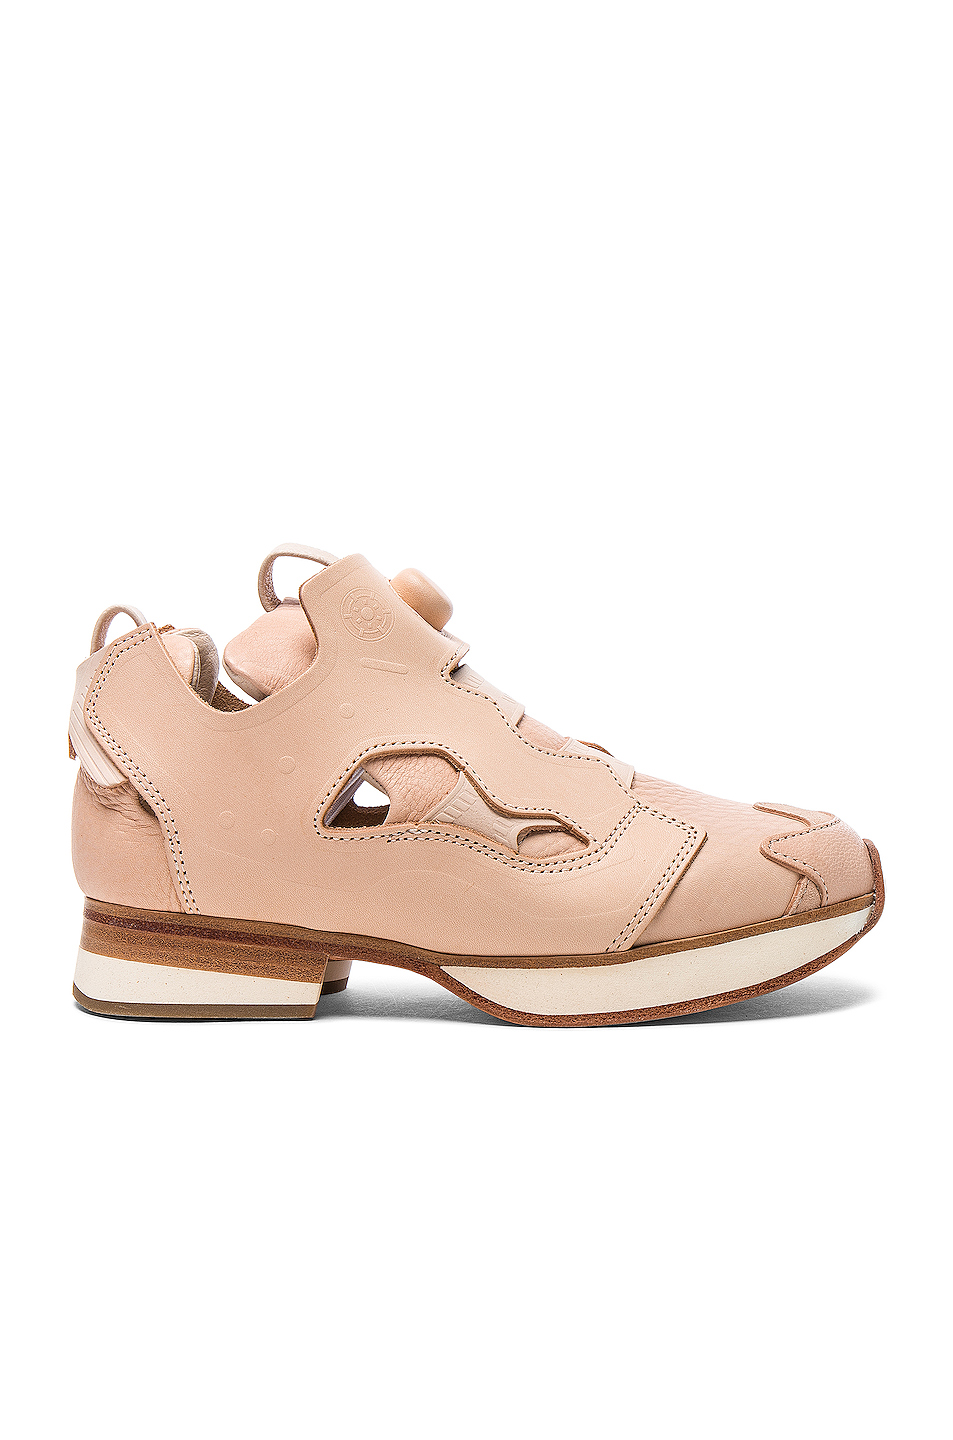 Hender Scheme Manual Industrial Product 15 in Neutrals